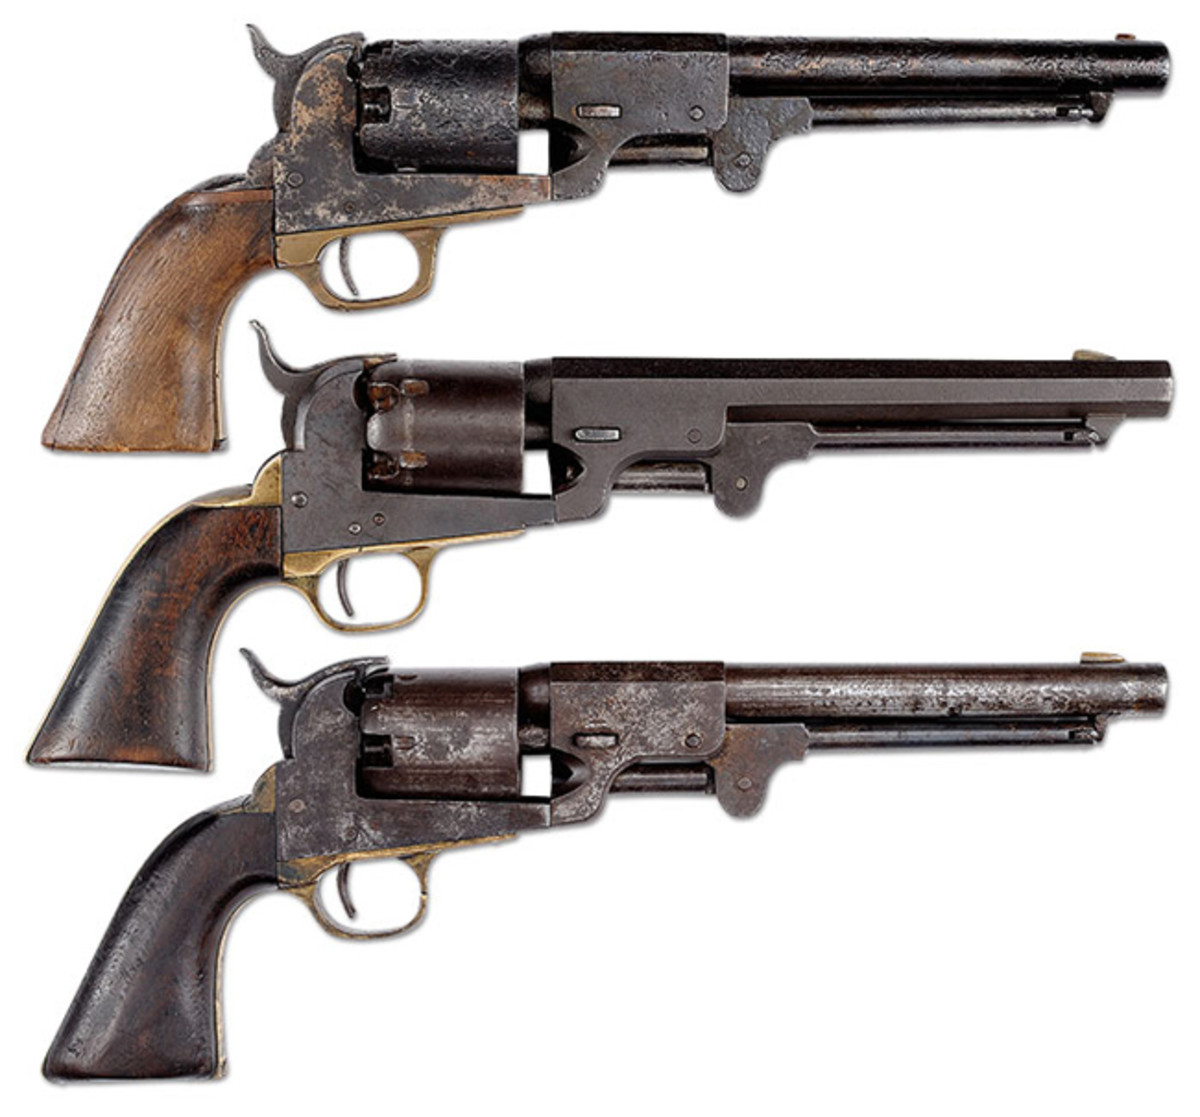 - Confederate Octagon Barrel Dance Dragoon Revolver Carried by Corp. John Hargrave, Whitfield's Texas Legion, from Direct Family Descent - Confederate Dance Revolver, SN 243 - Confederate Dance Dragoon Revolver Highest Serial Number Known, Found In Columbia, TX at the Dance Factory Location